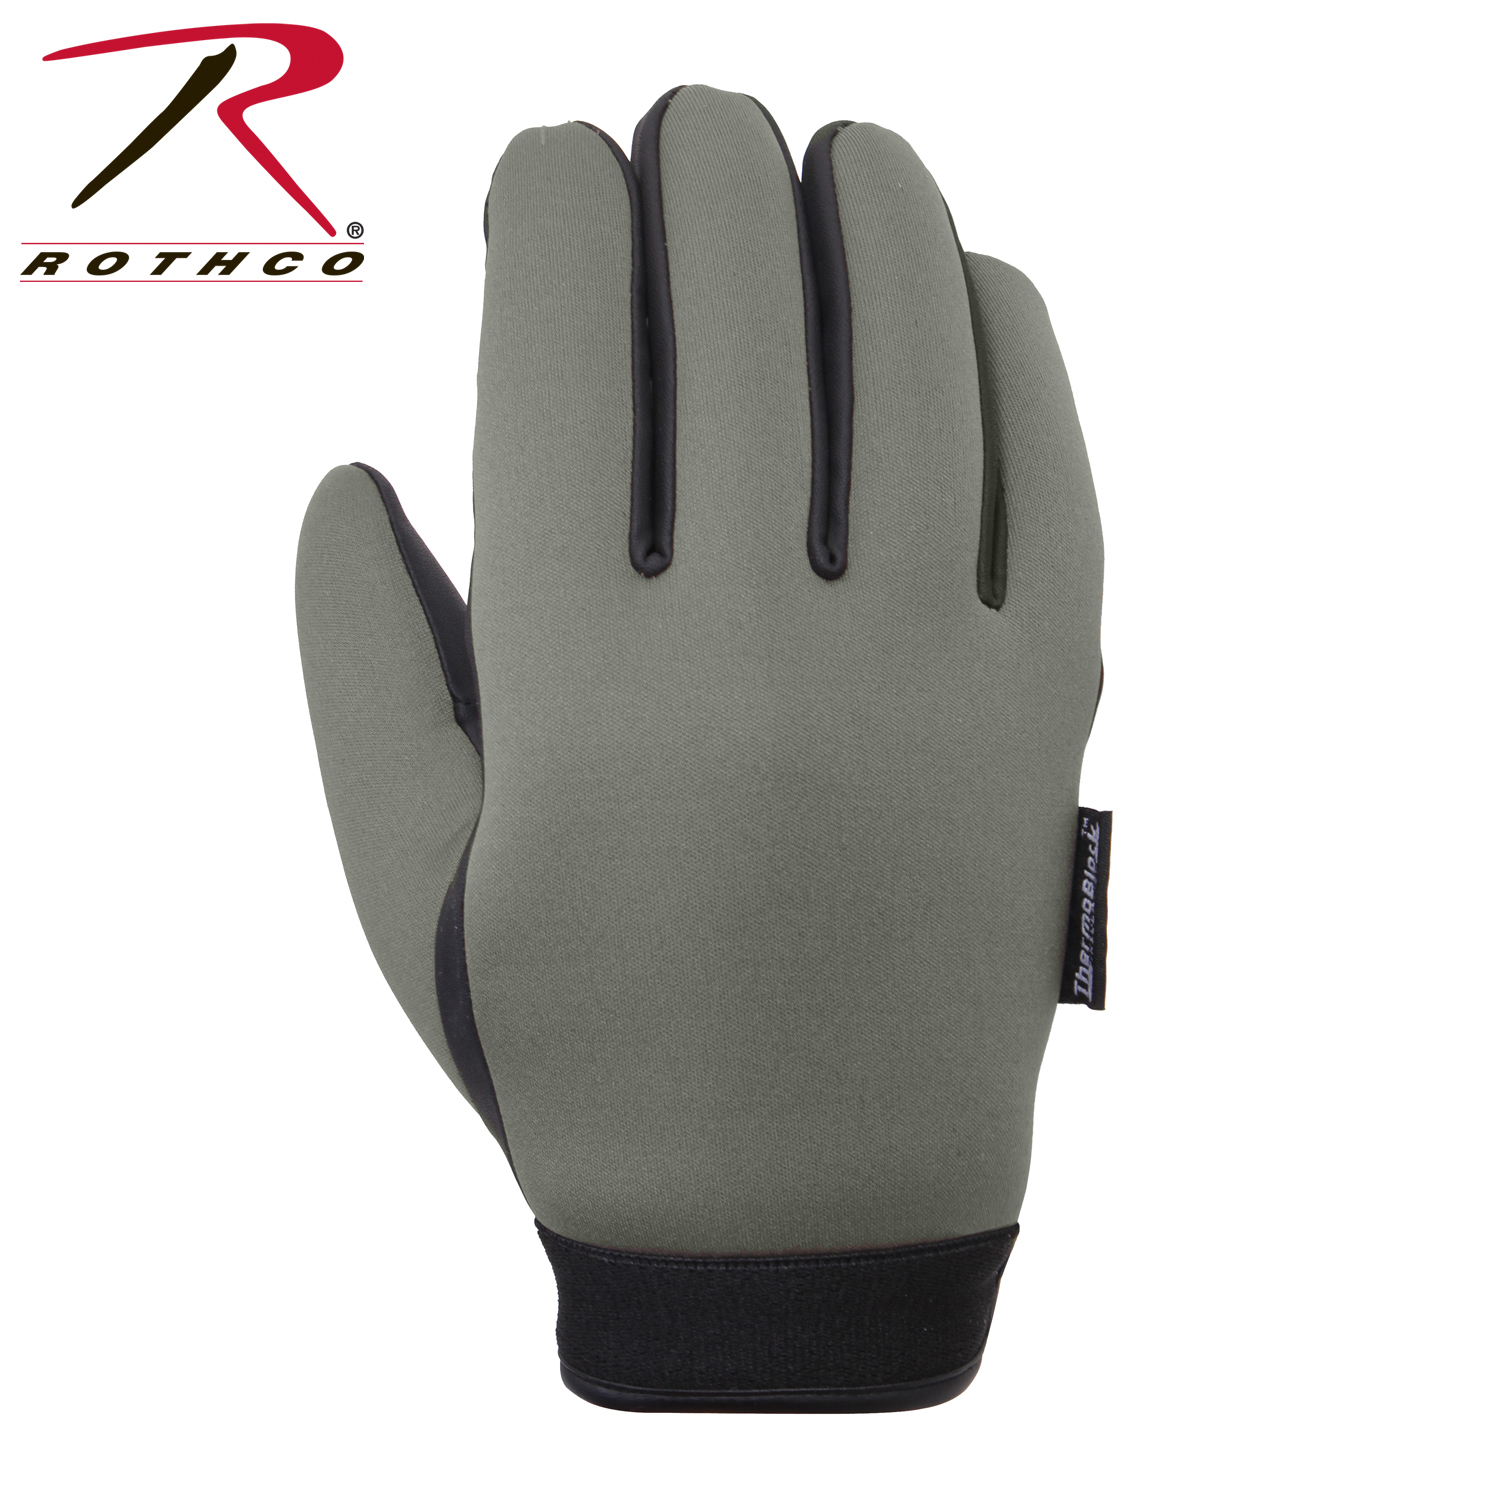 Rothco waterproof cold weather neoprene gloves Rothco waterproof neoprene gloves Rothco